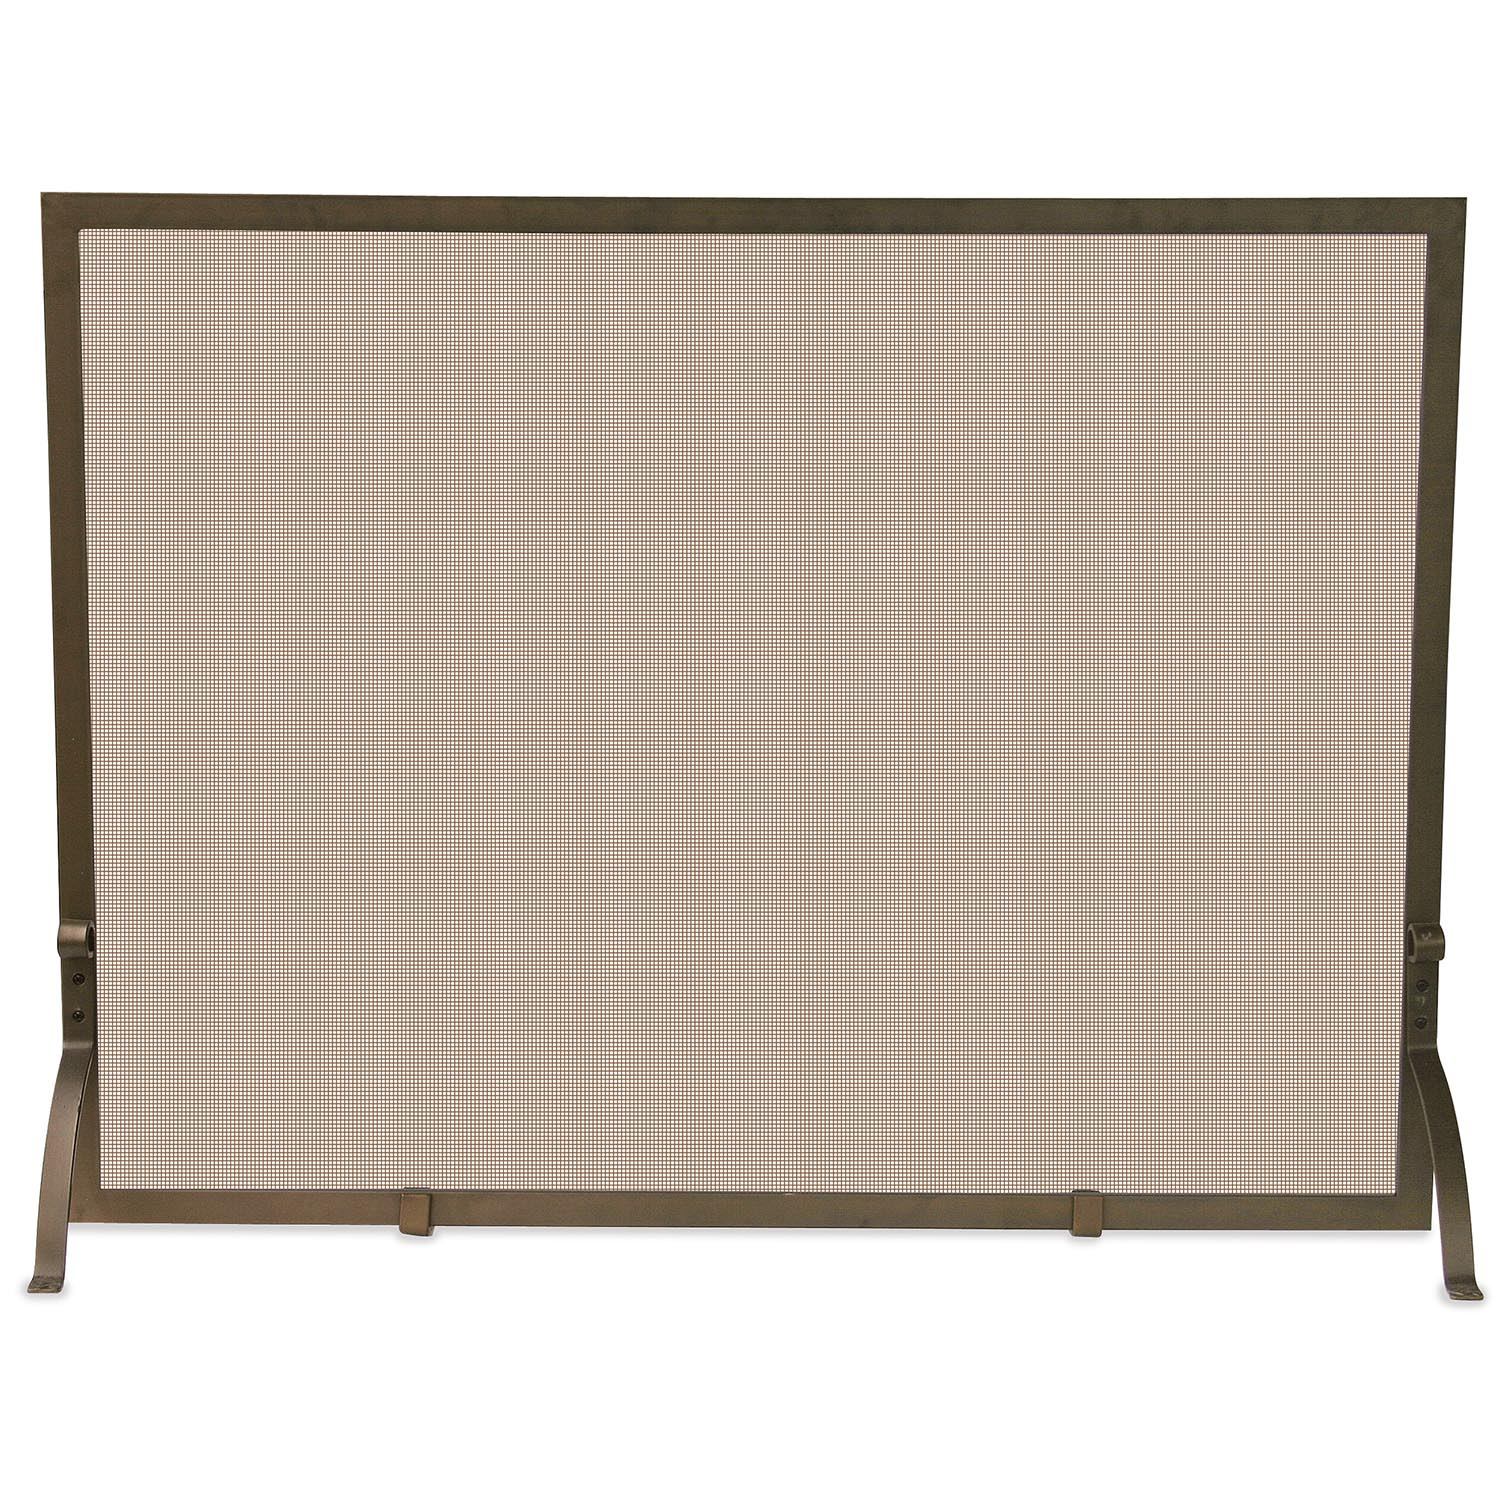 Uniflame Single Panel Bronze Fireplace Screen S 1642